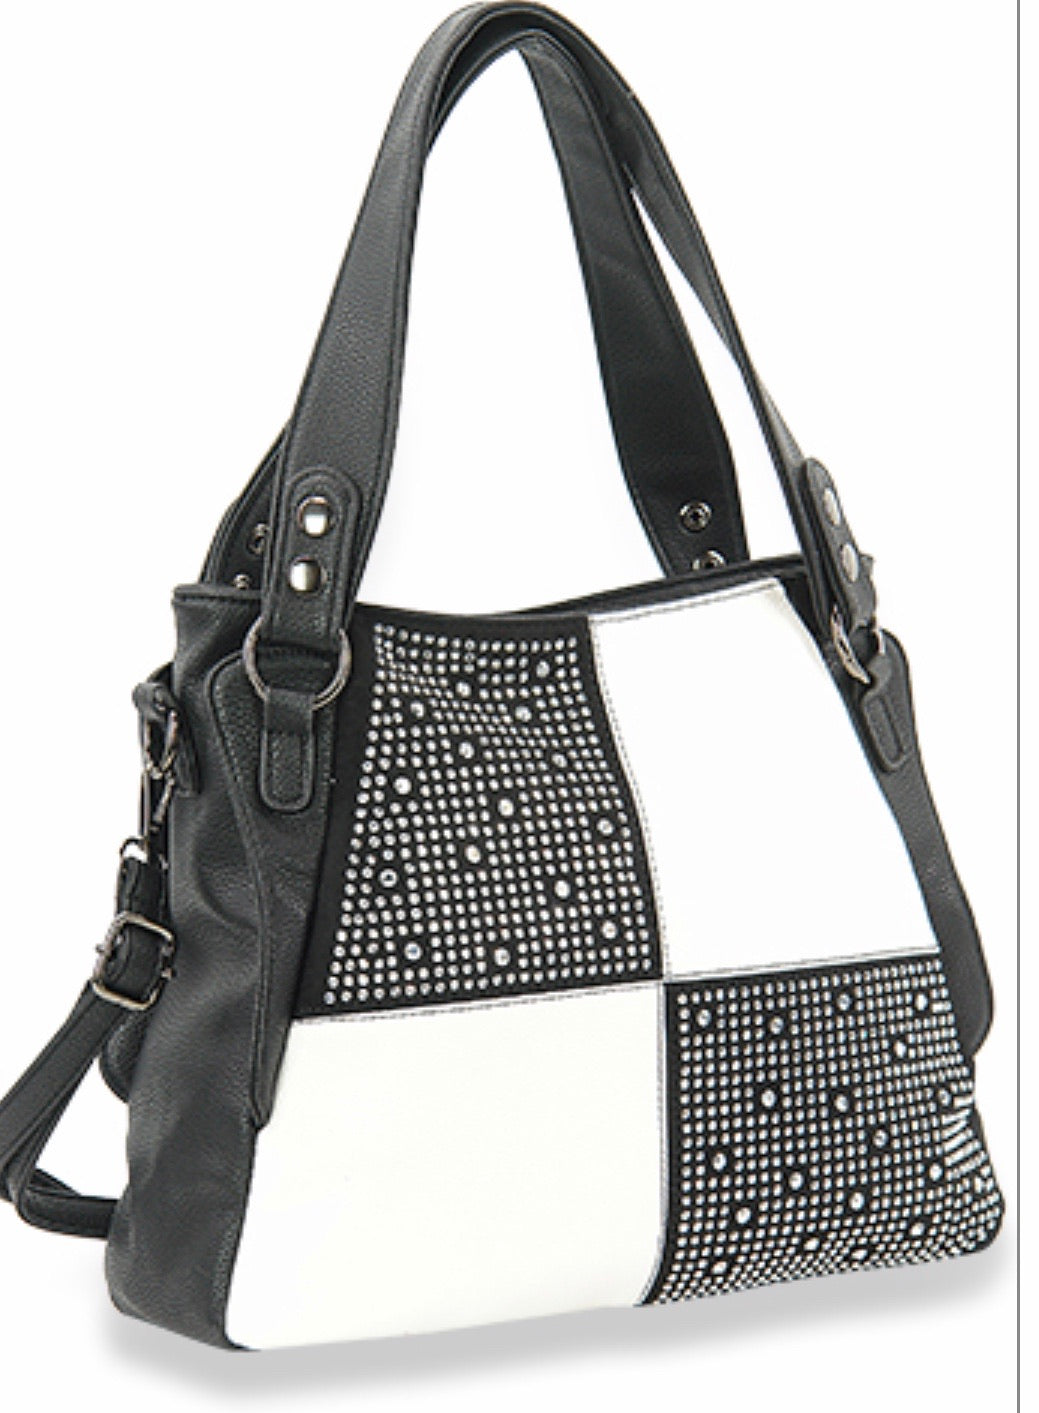 Black & White colour block bling handbag